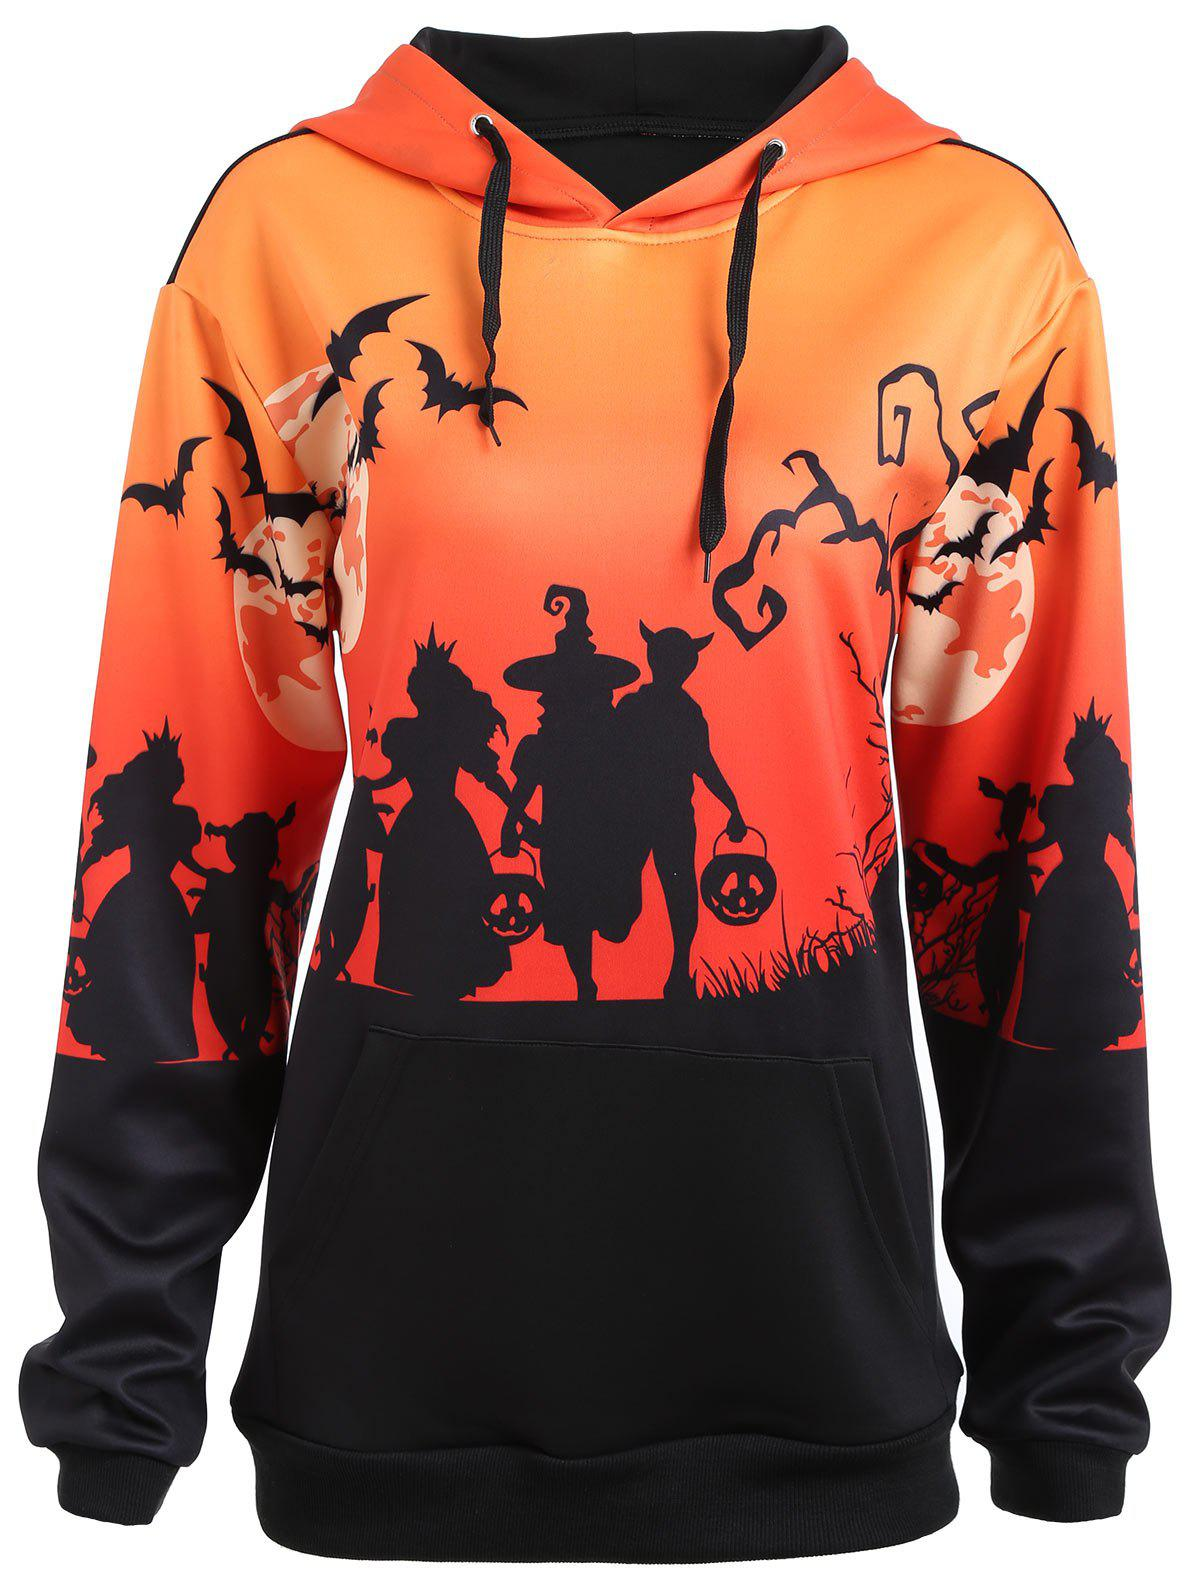 Plus Size Halloween Bat Moon Print Hoodie with PocketWOMEN<br><br>Size: 4XL; Color: BLACK; Material: Cotton,Polyester; Shirt Length: Regular; Sleeve Length: Full; Style: Fashion; Pattern Style: Print; Season: Fall; Weight: 0.4500kg; Package Contents: 1 x Hoodie;